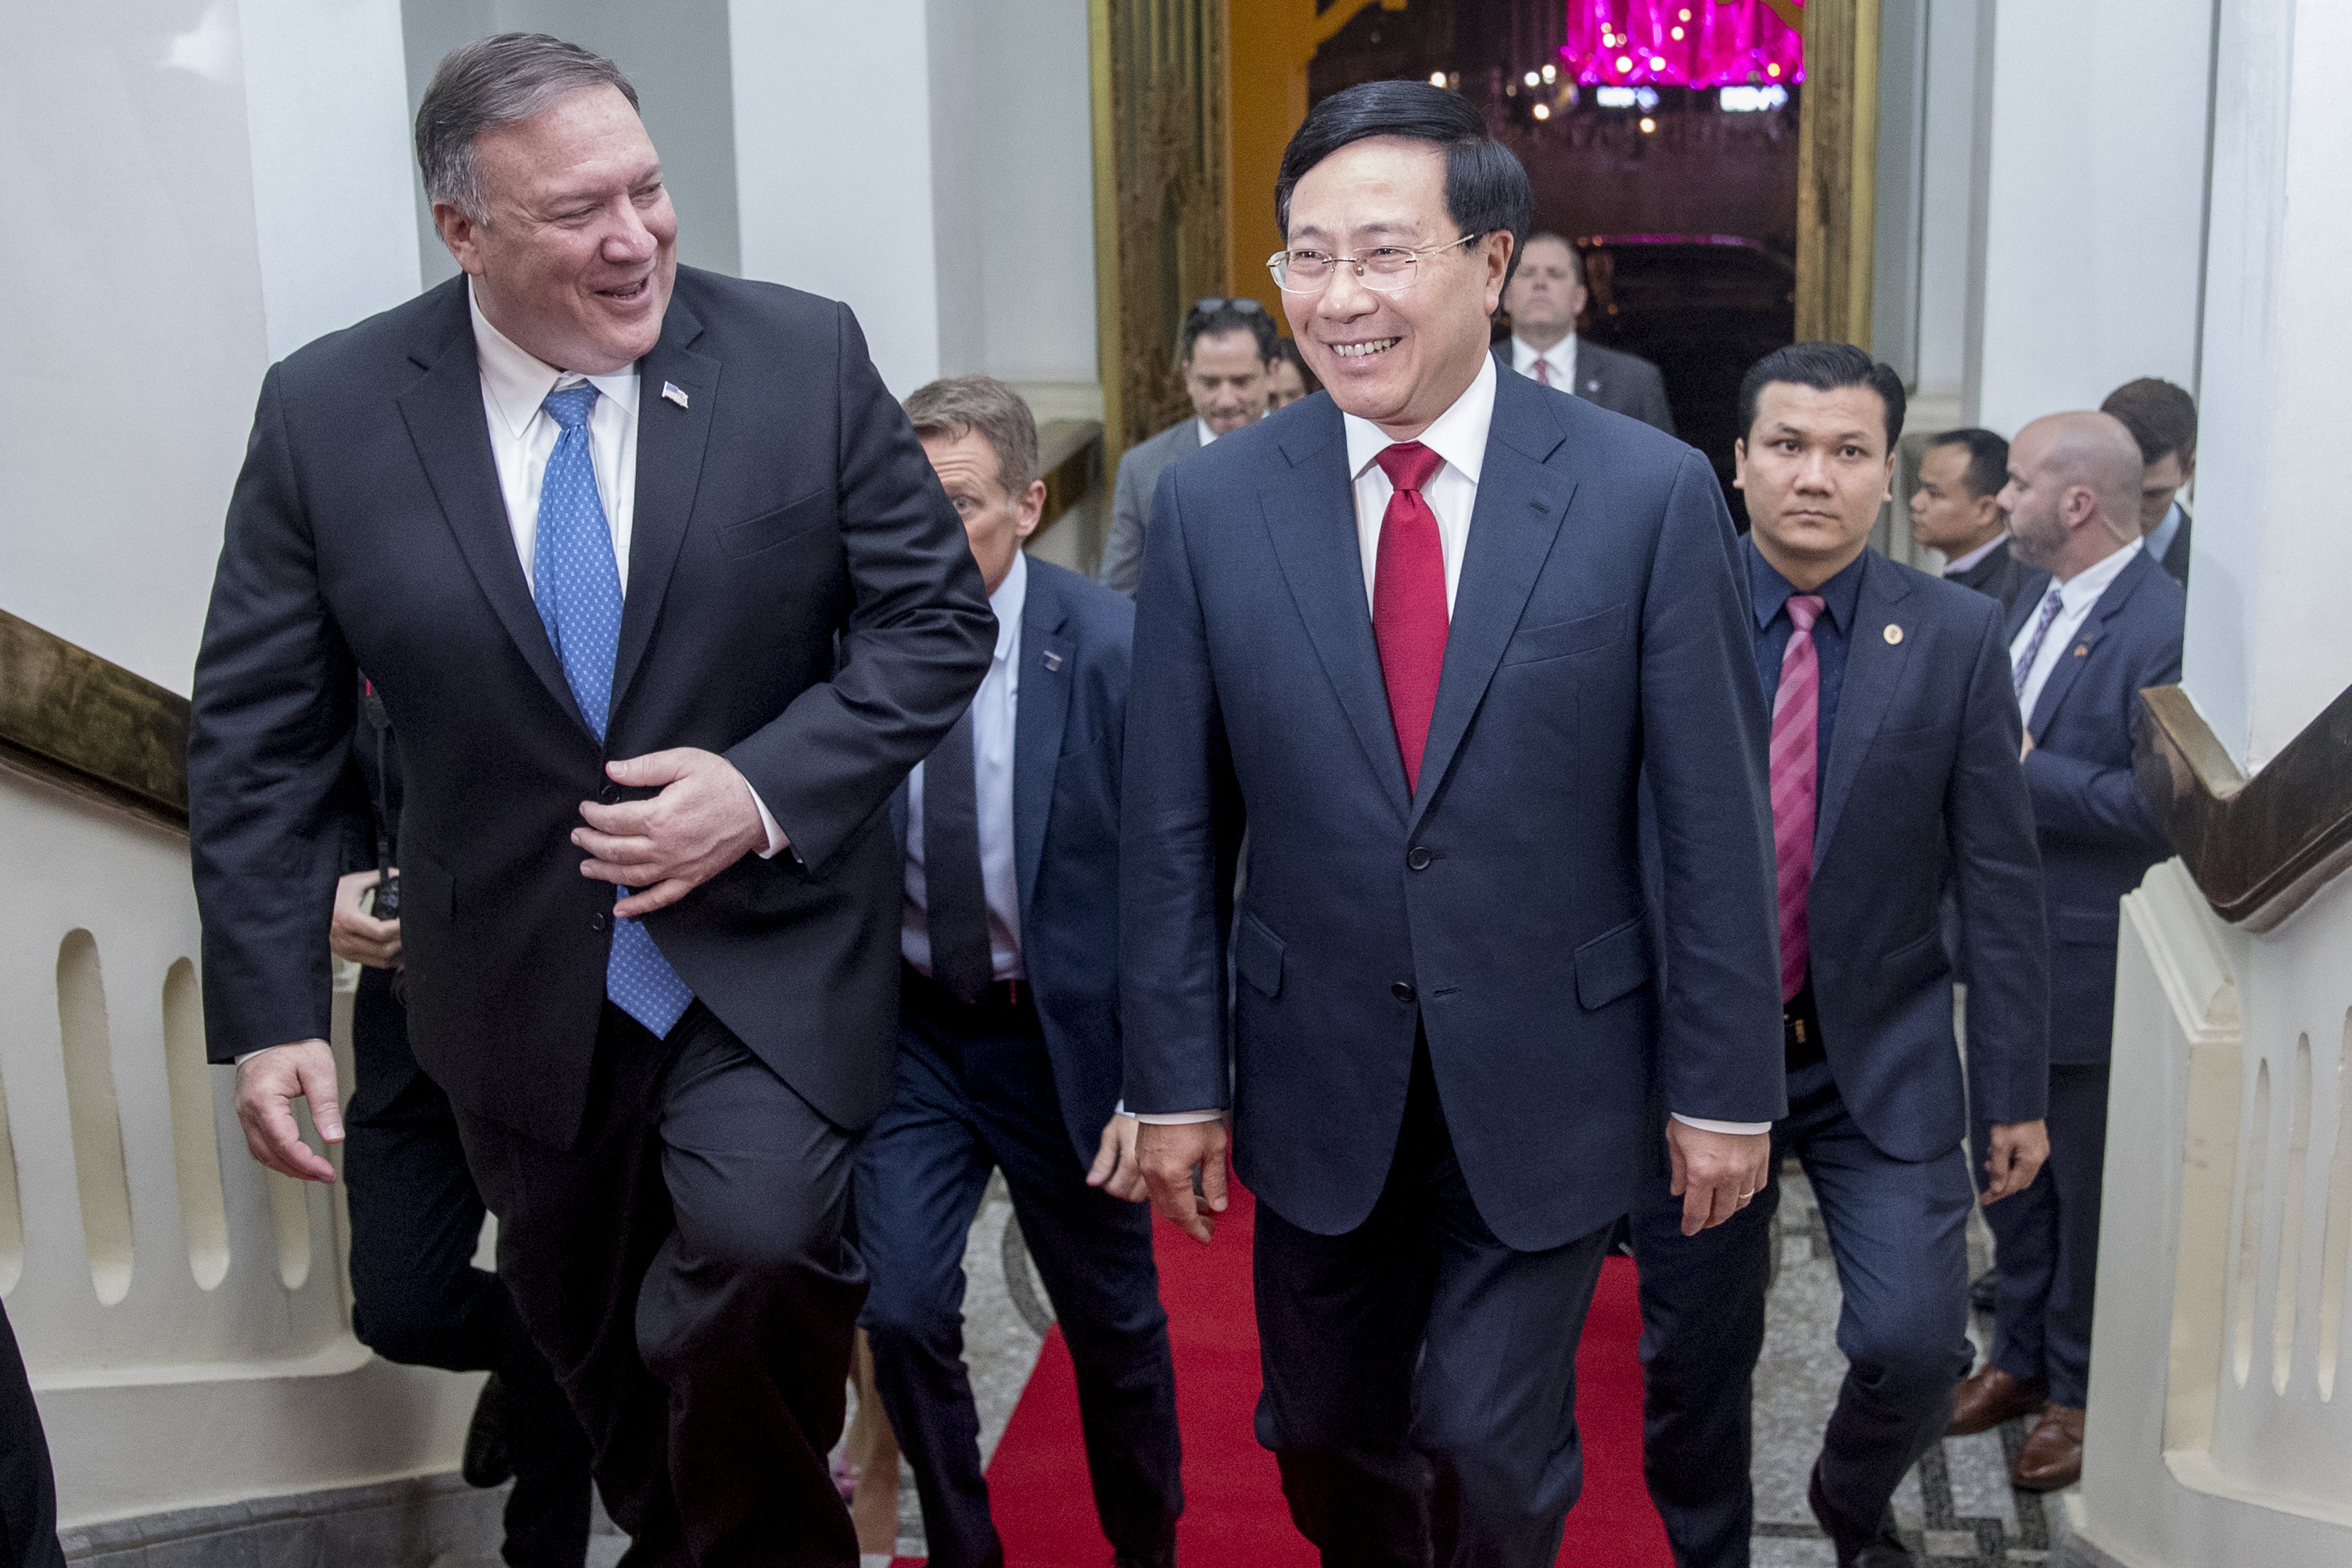 Secretary of State Mike Pompeo and Vietnamese Deputy Prime Minister and Foreign Minister Pham Binh Minh arrive for a meeting at the Ministry of Foreign Affairs in Hanoi, Vietnam, Tuesday, Feb. 26, 2019. Pompeo is in Vietnam for a second summit between President Donald Trump and North Korean leader Kim Jong Un. (AP Photo/Andrew Harnik, Pool)